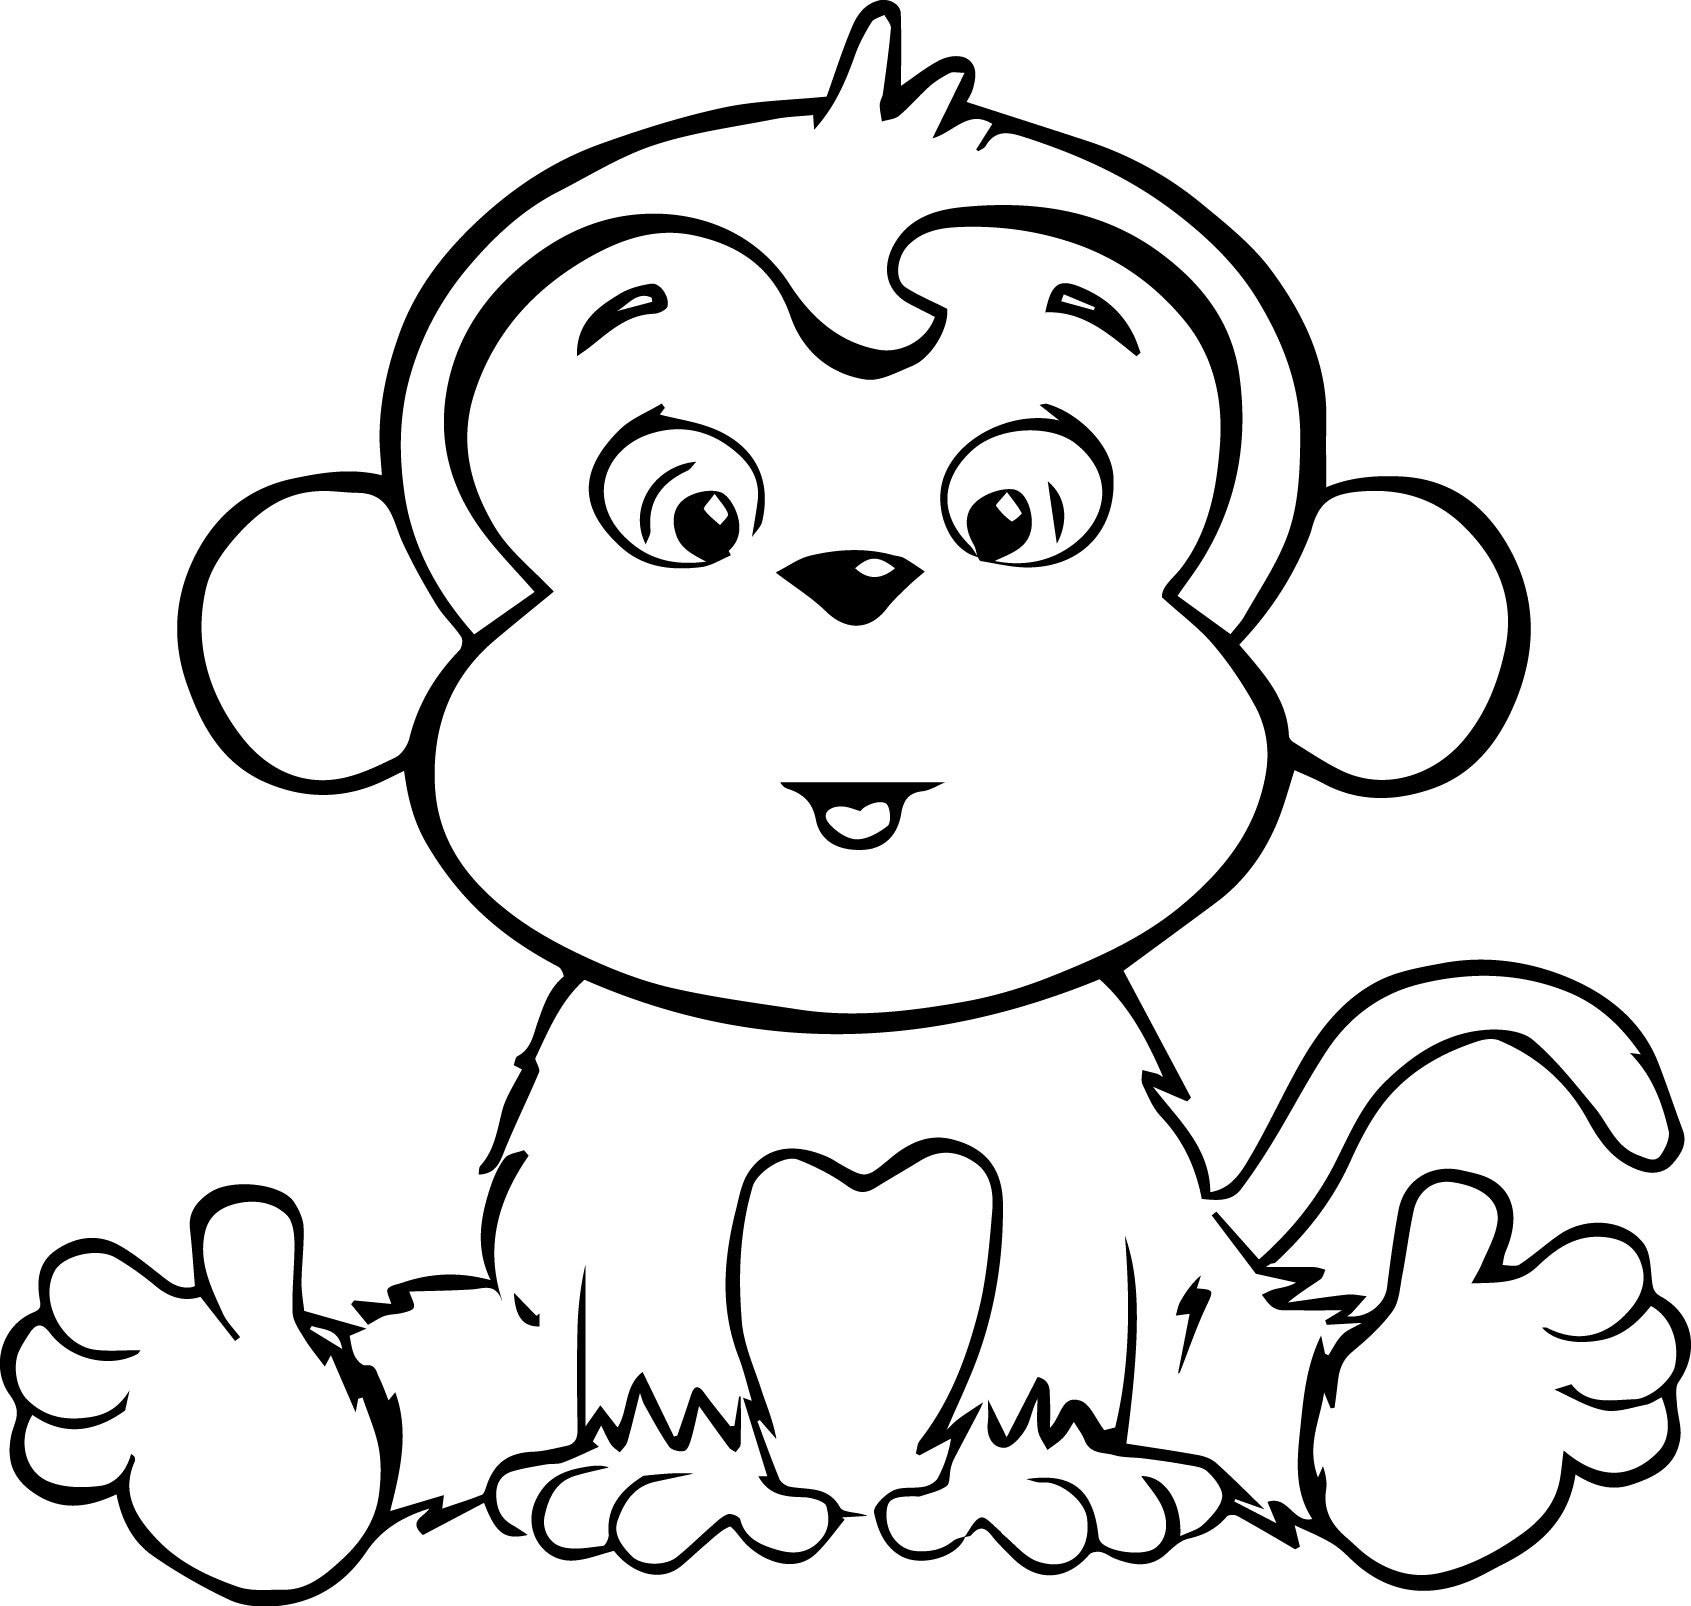 printable cartoons rabbit free to color for children rabbit kids coloring pages printable cartoons